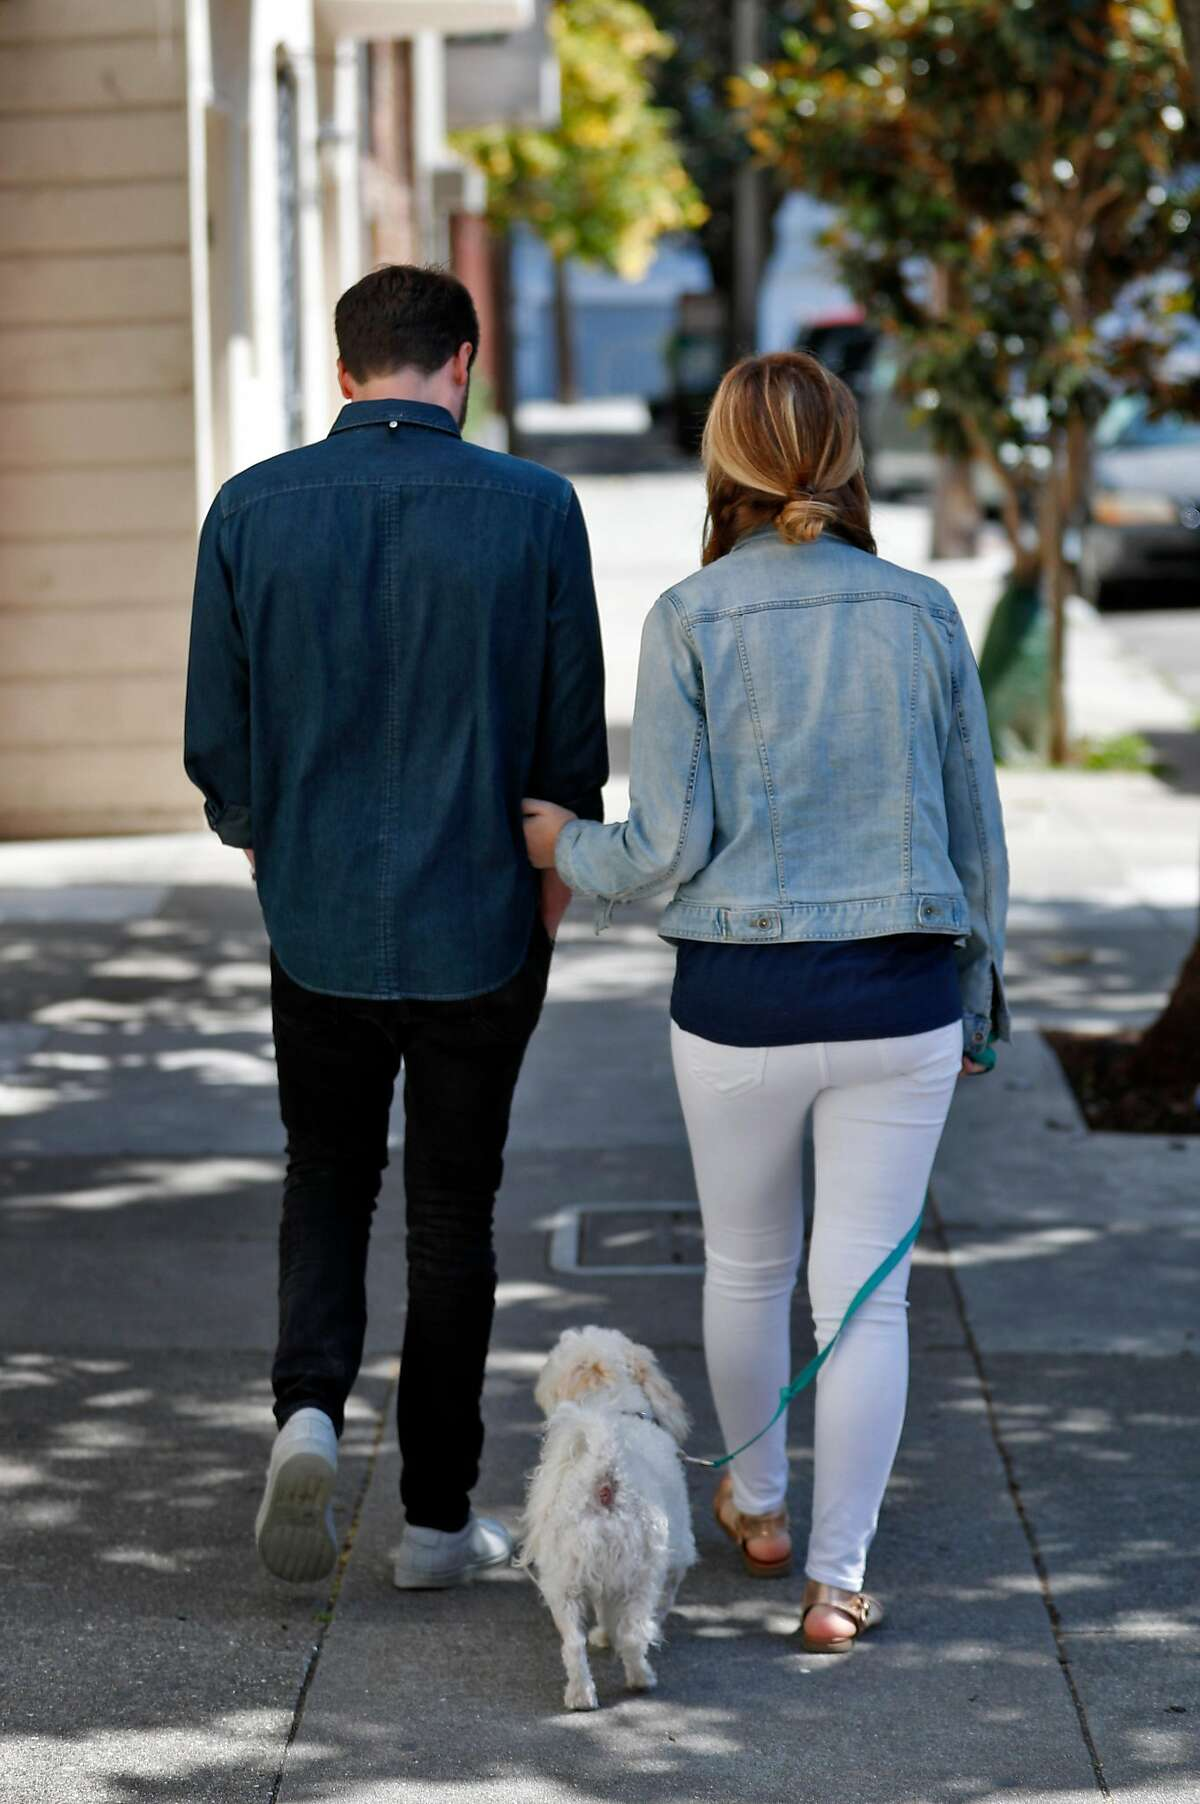 Julia and Jack Altman walk with their rescue dog Teddy near their home in the Mission District of San Francisco, Calif., on Sunday, July 7, 2019. The Altmans miscarried a baby a little over a year ago and found that reconnecting with nature and being outside to be very therapeutic. Jack felt so moved by the experience that he instituted a miscarriage leave policy at his startup, Lattice.